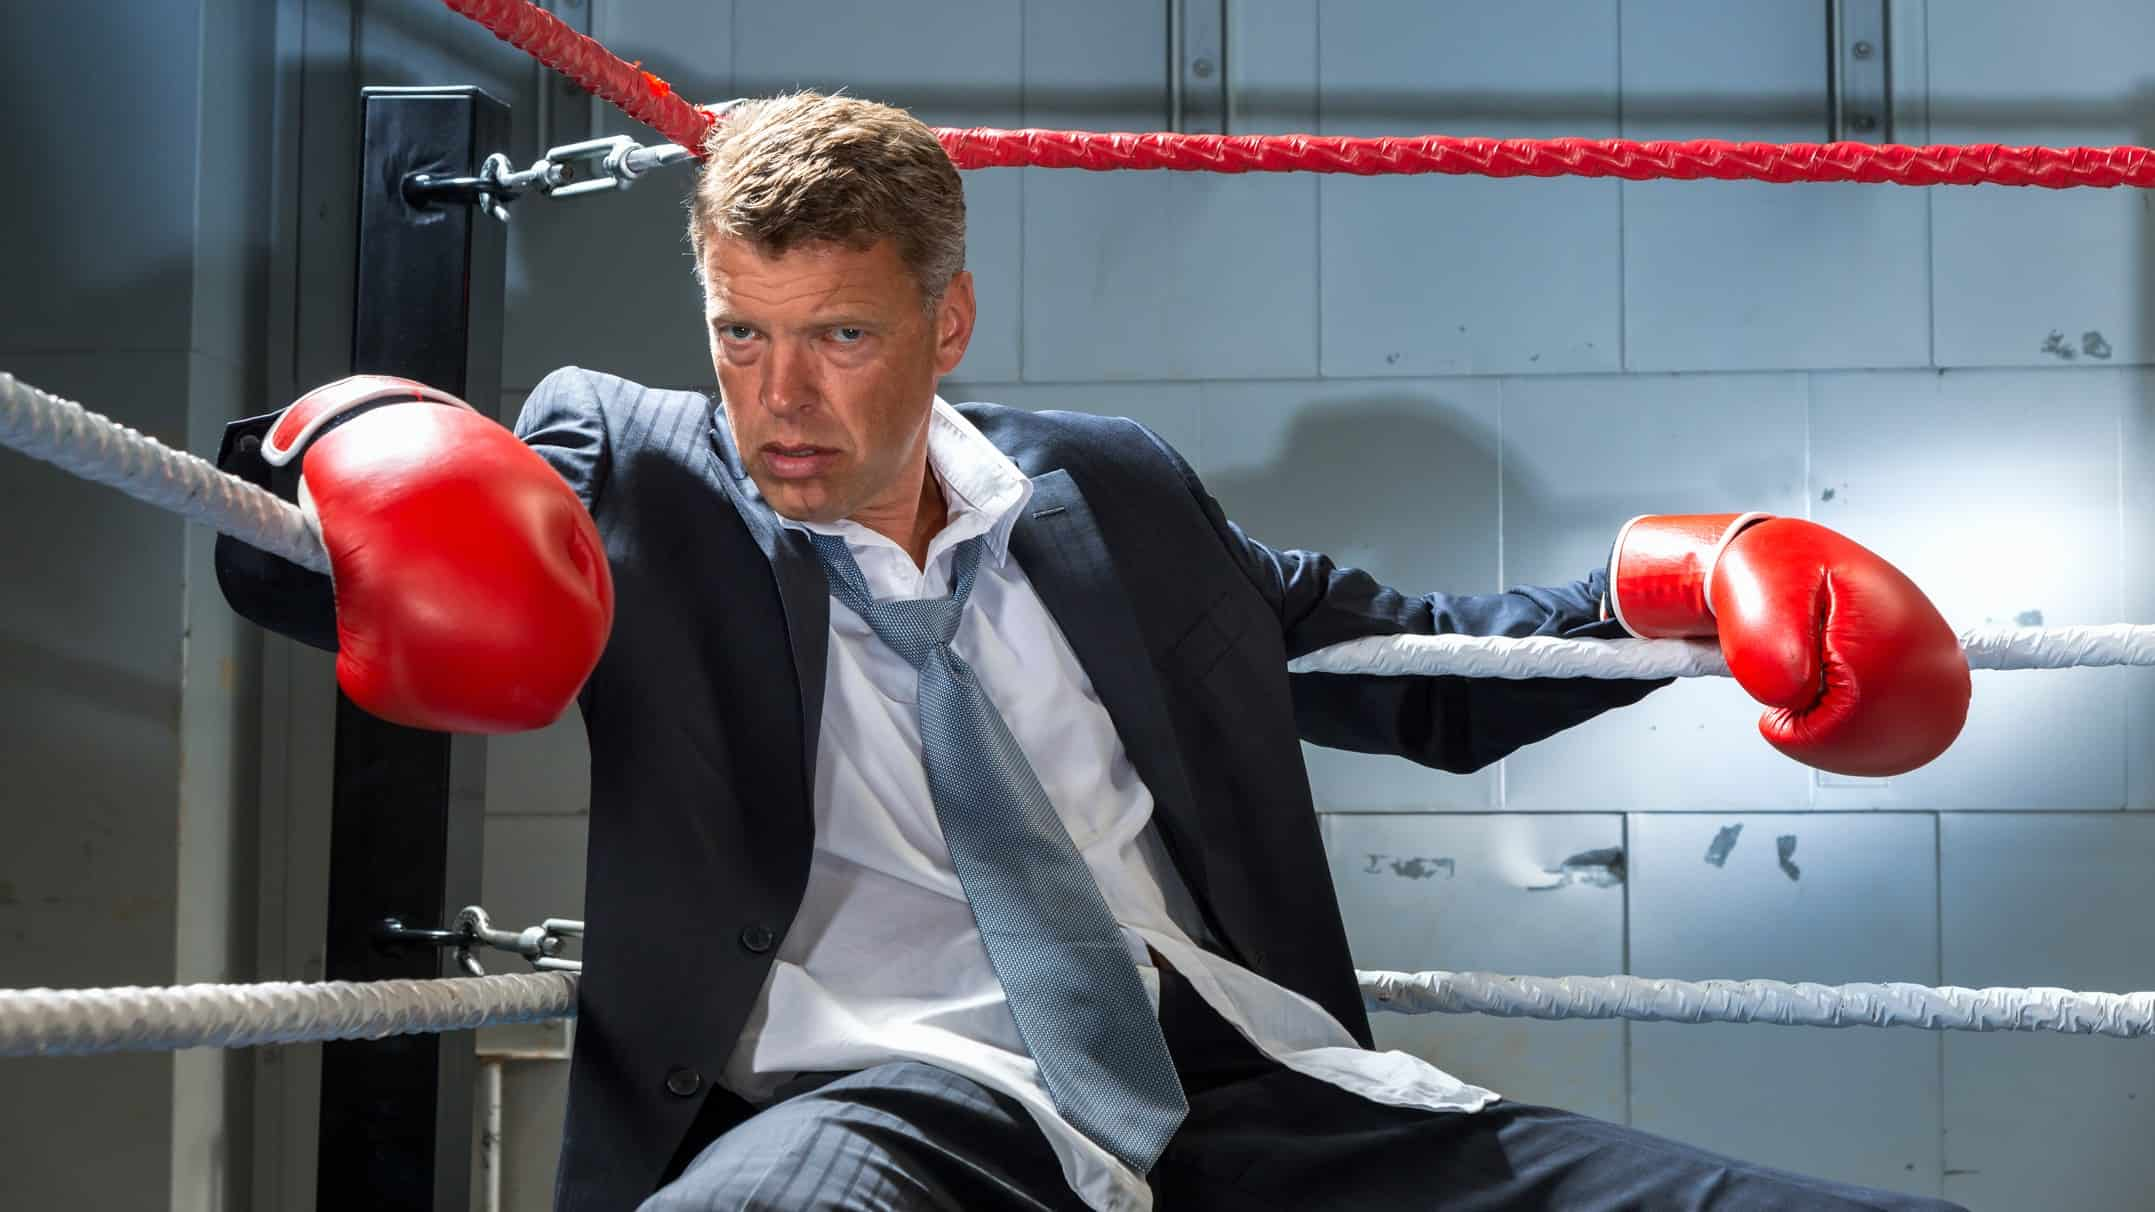 A businessman in a suit and wearing boxing gloves, slump in the corner of a ring, indicating a corporate fight between ASX companies